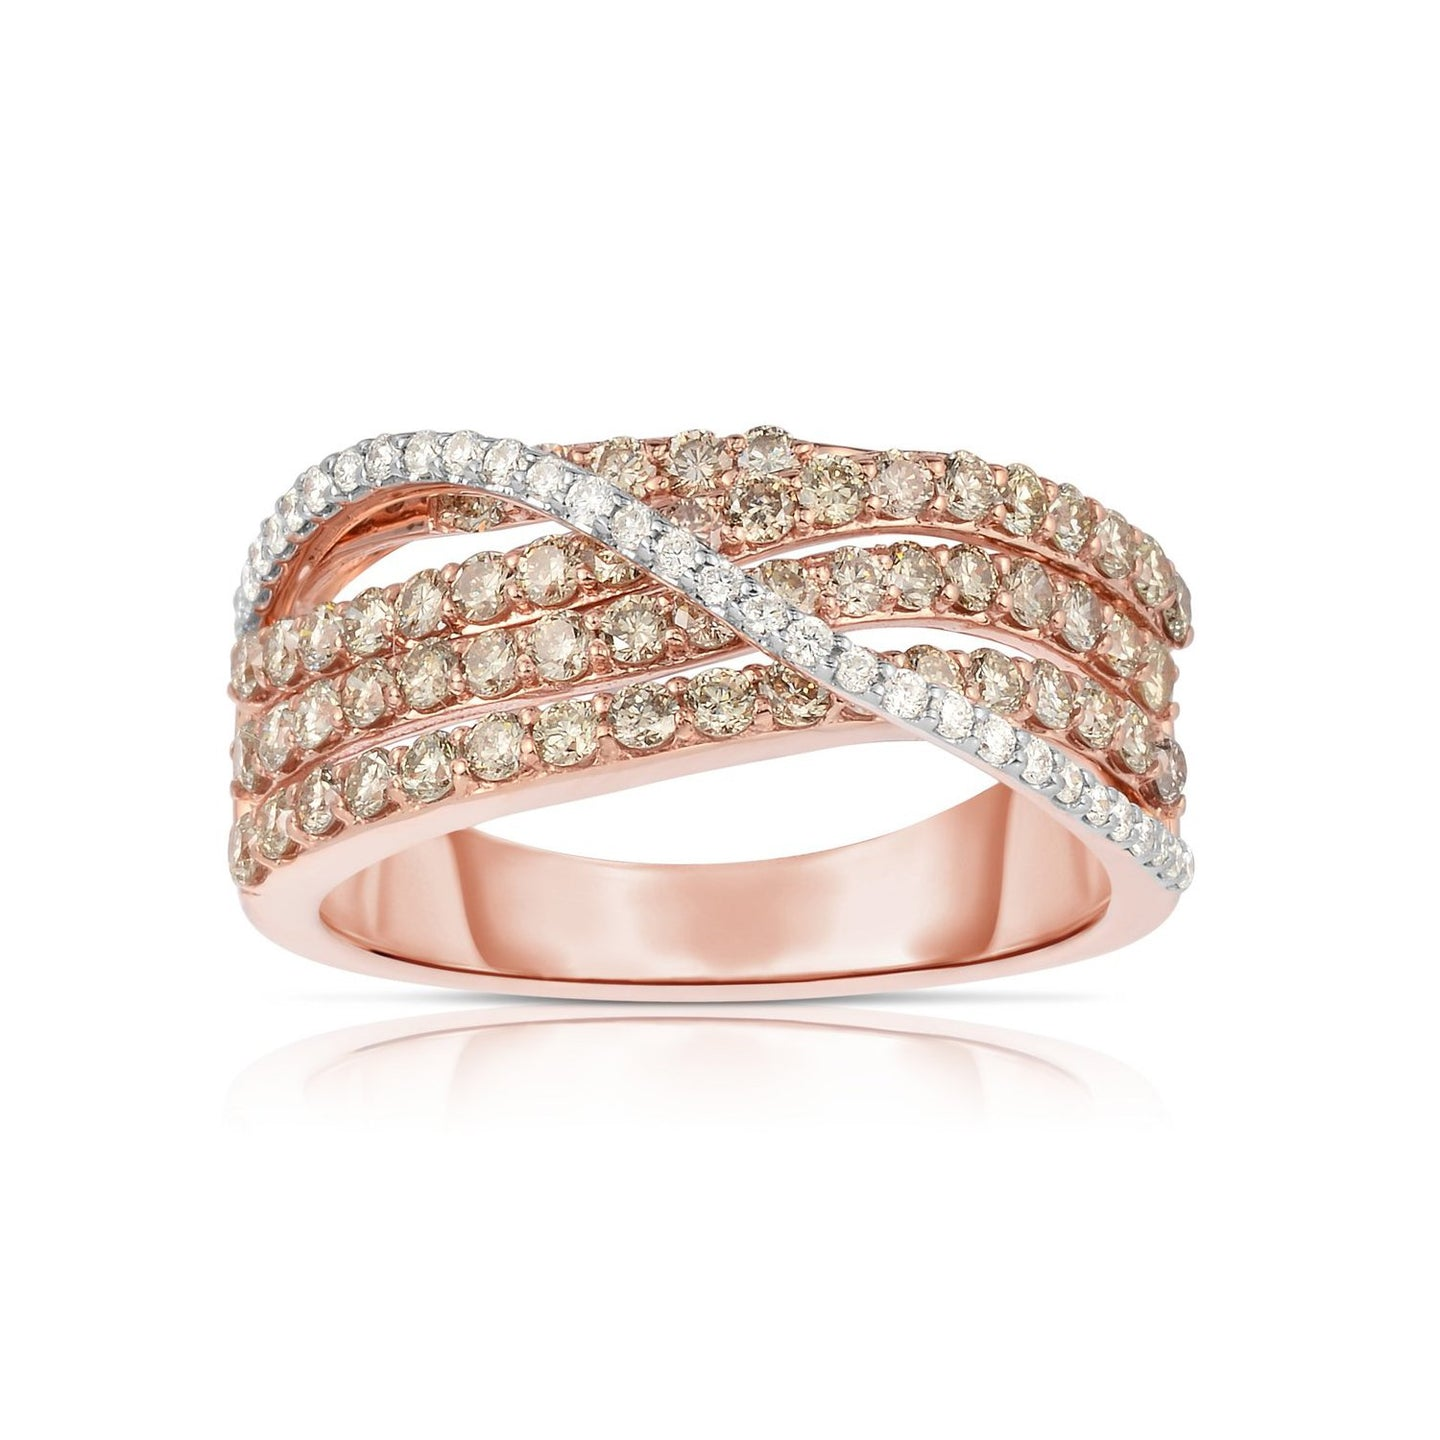 Sabel Collection 14K Rose Gold Fancy and White Diamond Crisscross Ring